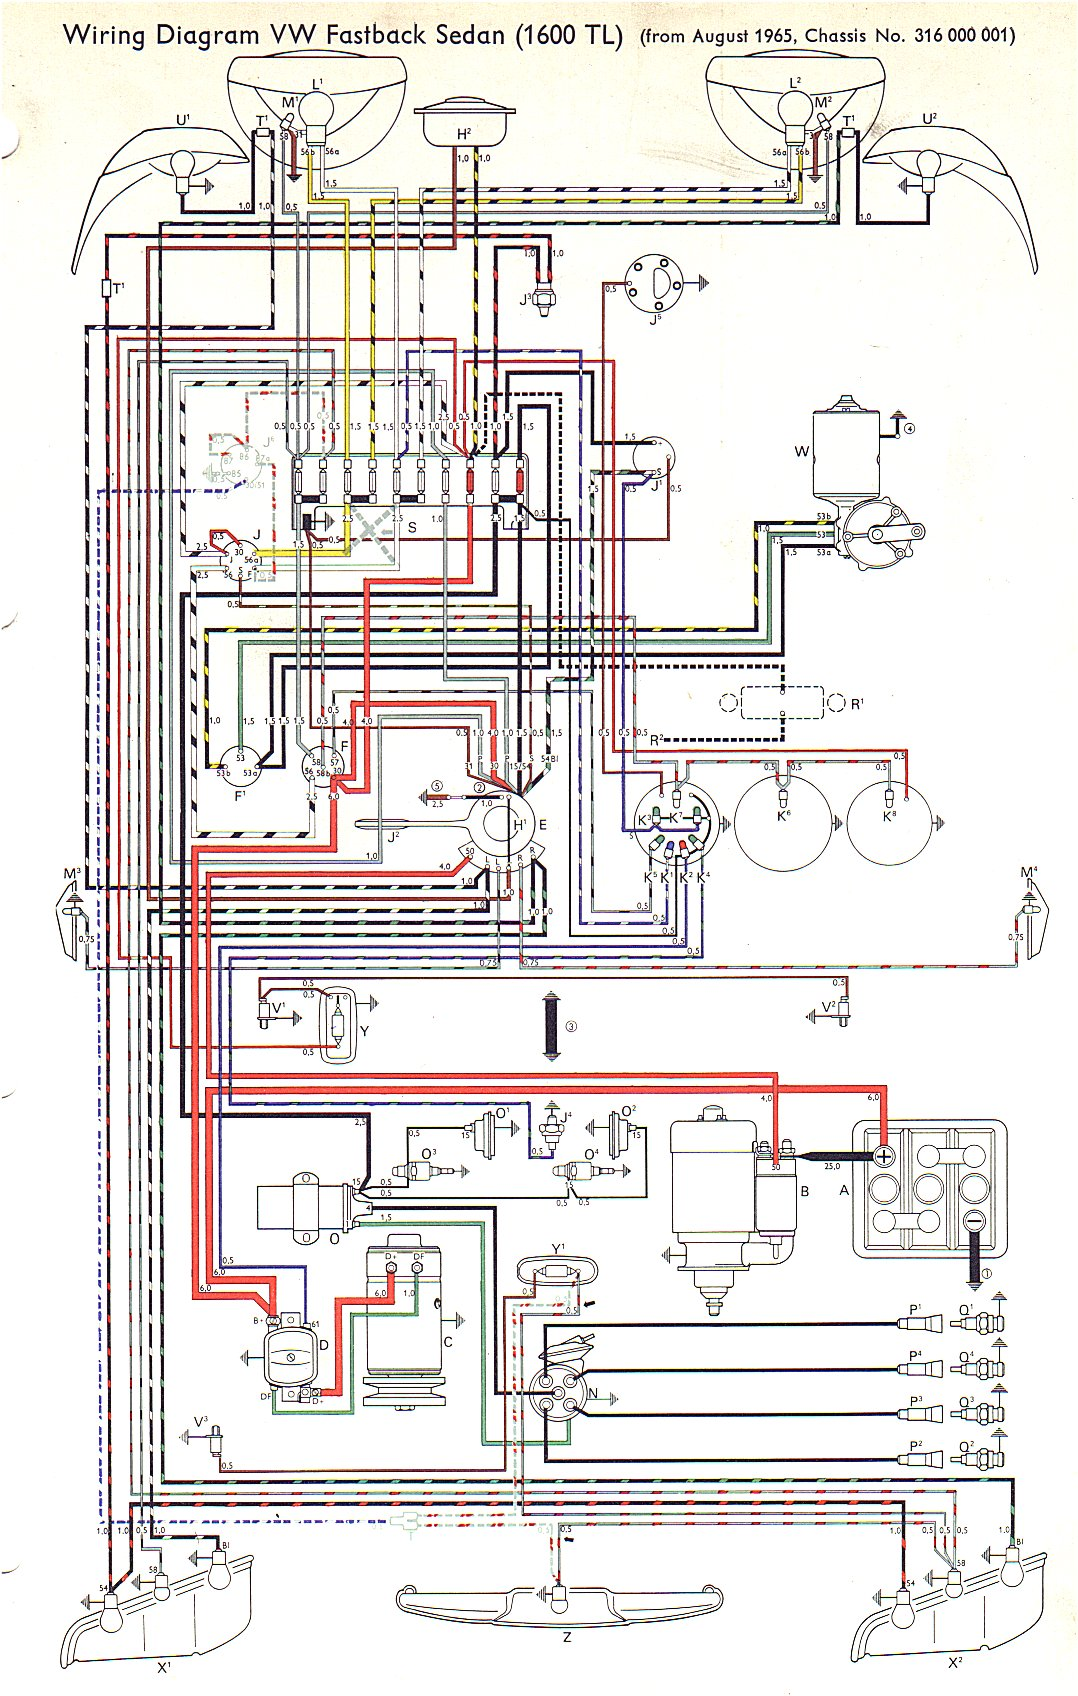 2001 Mitsubishi Mirage Wiring Harness Diagram Will Be A Thing 2003 Galant Stereo Vw Type 3 Diagrams De Coupe